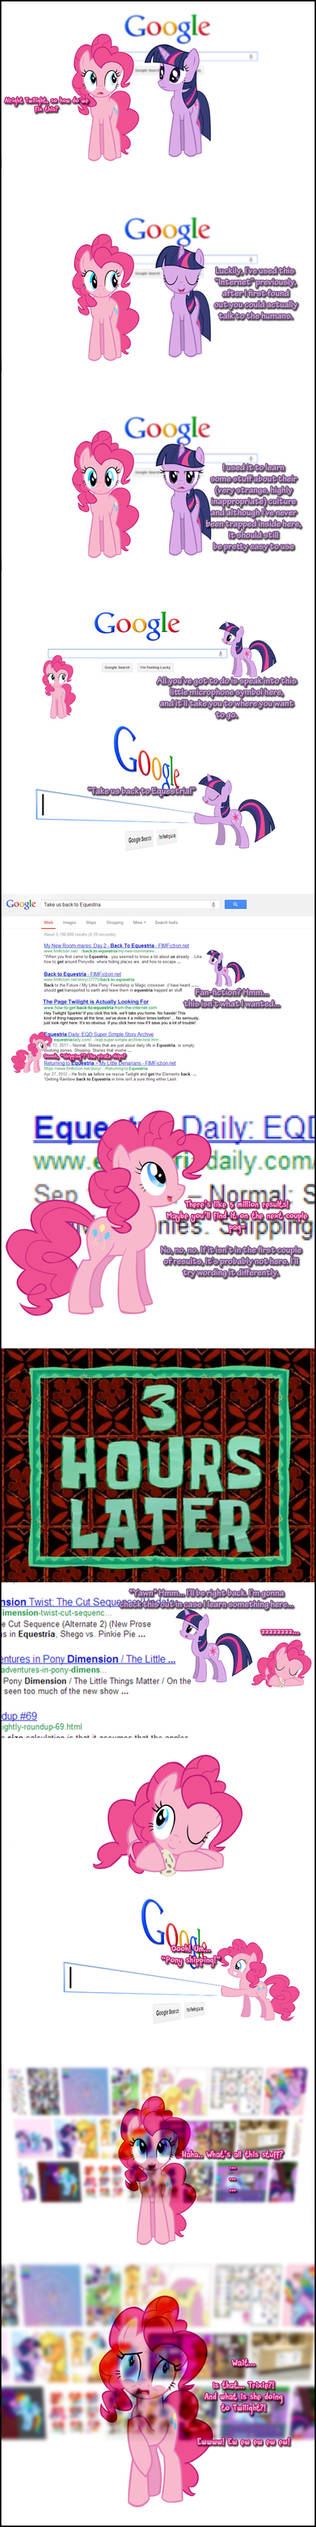 Pinkie Pie says Google-search!